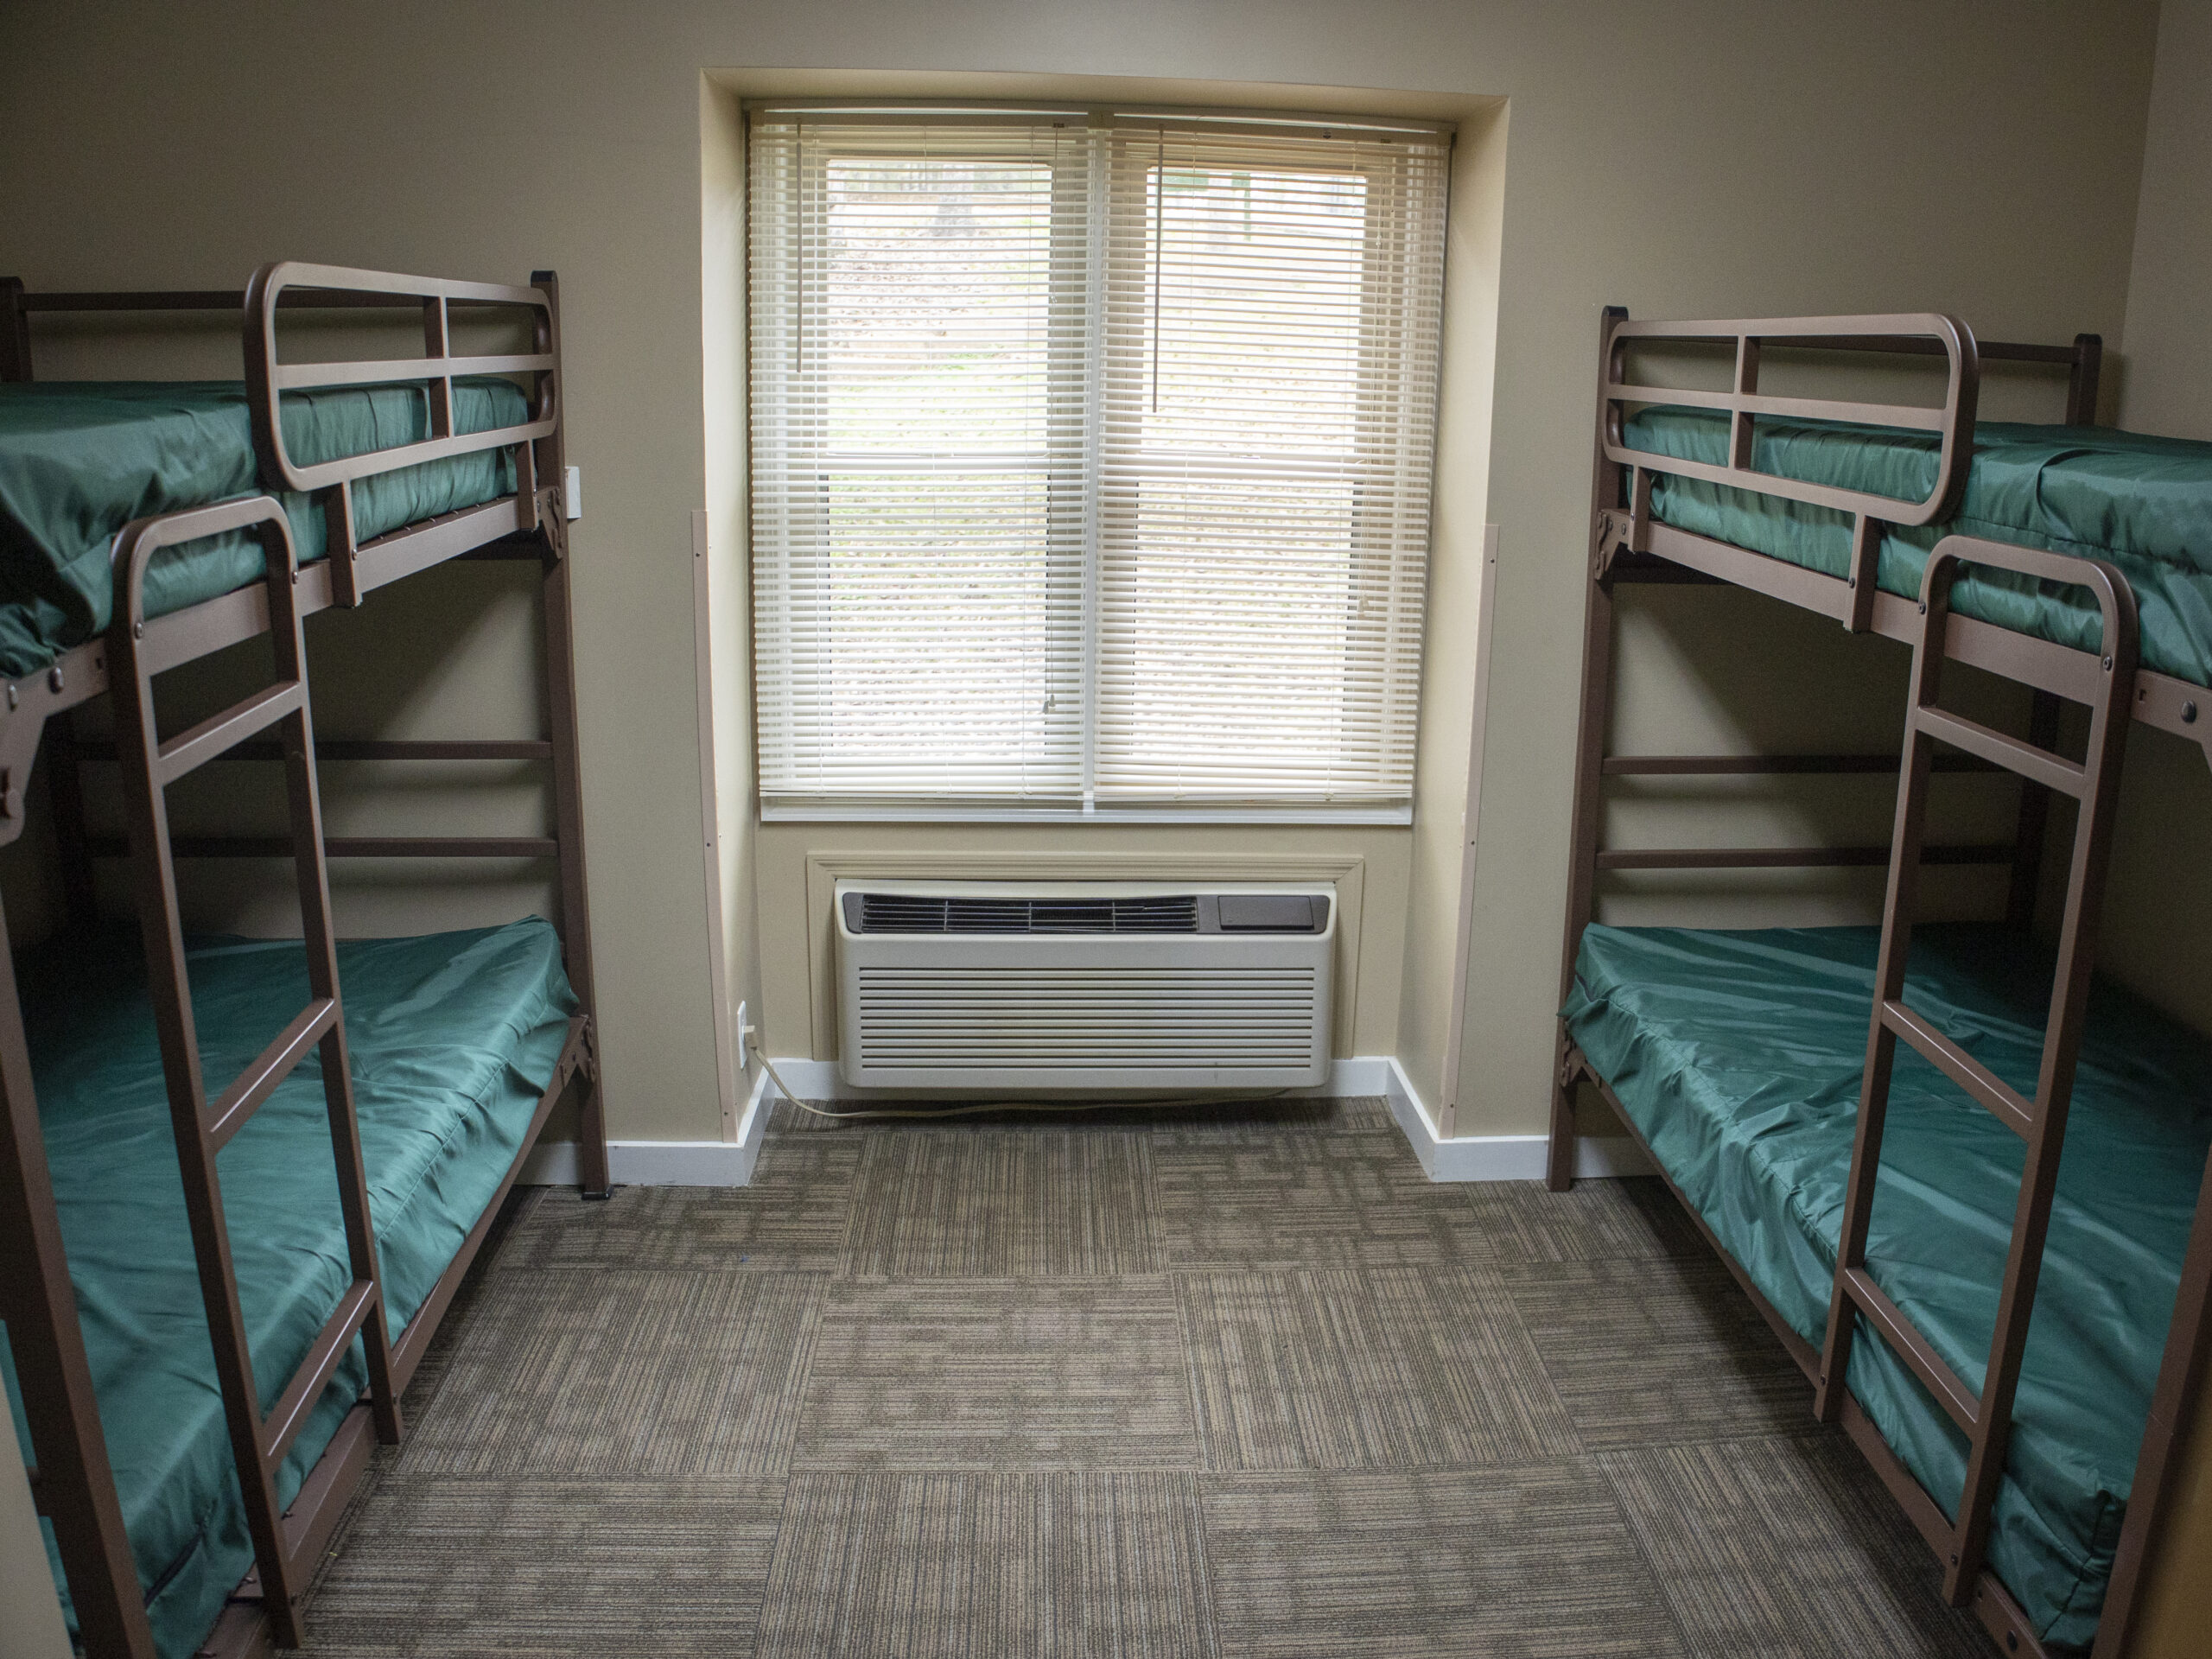 dorm room with two sets of bunk beds